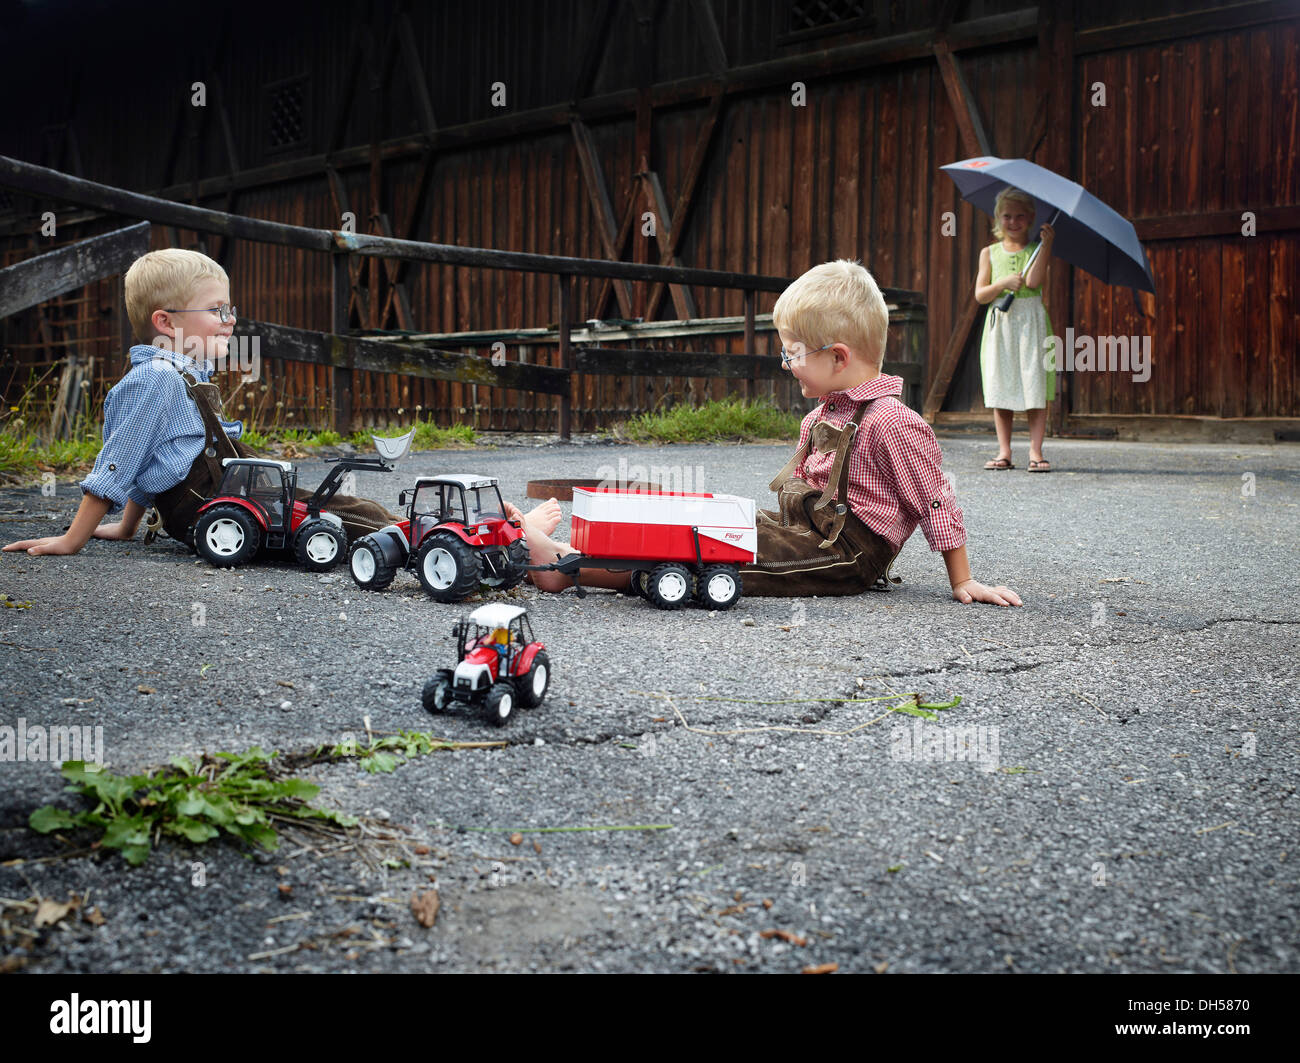 Children playing with toy tractors on farm, Reith im Alpbachtal, Kufstein District, North Tirol, Tirol, Austria - Stock Image